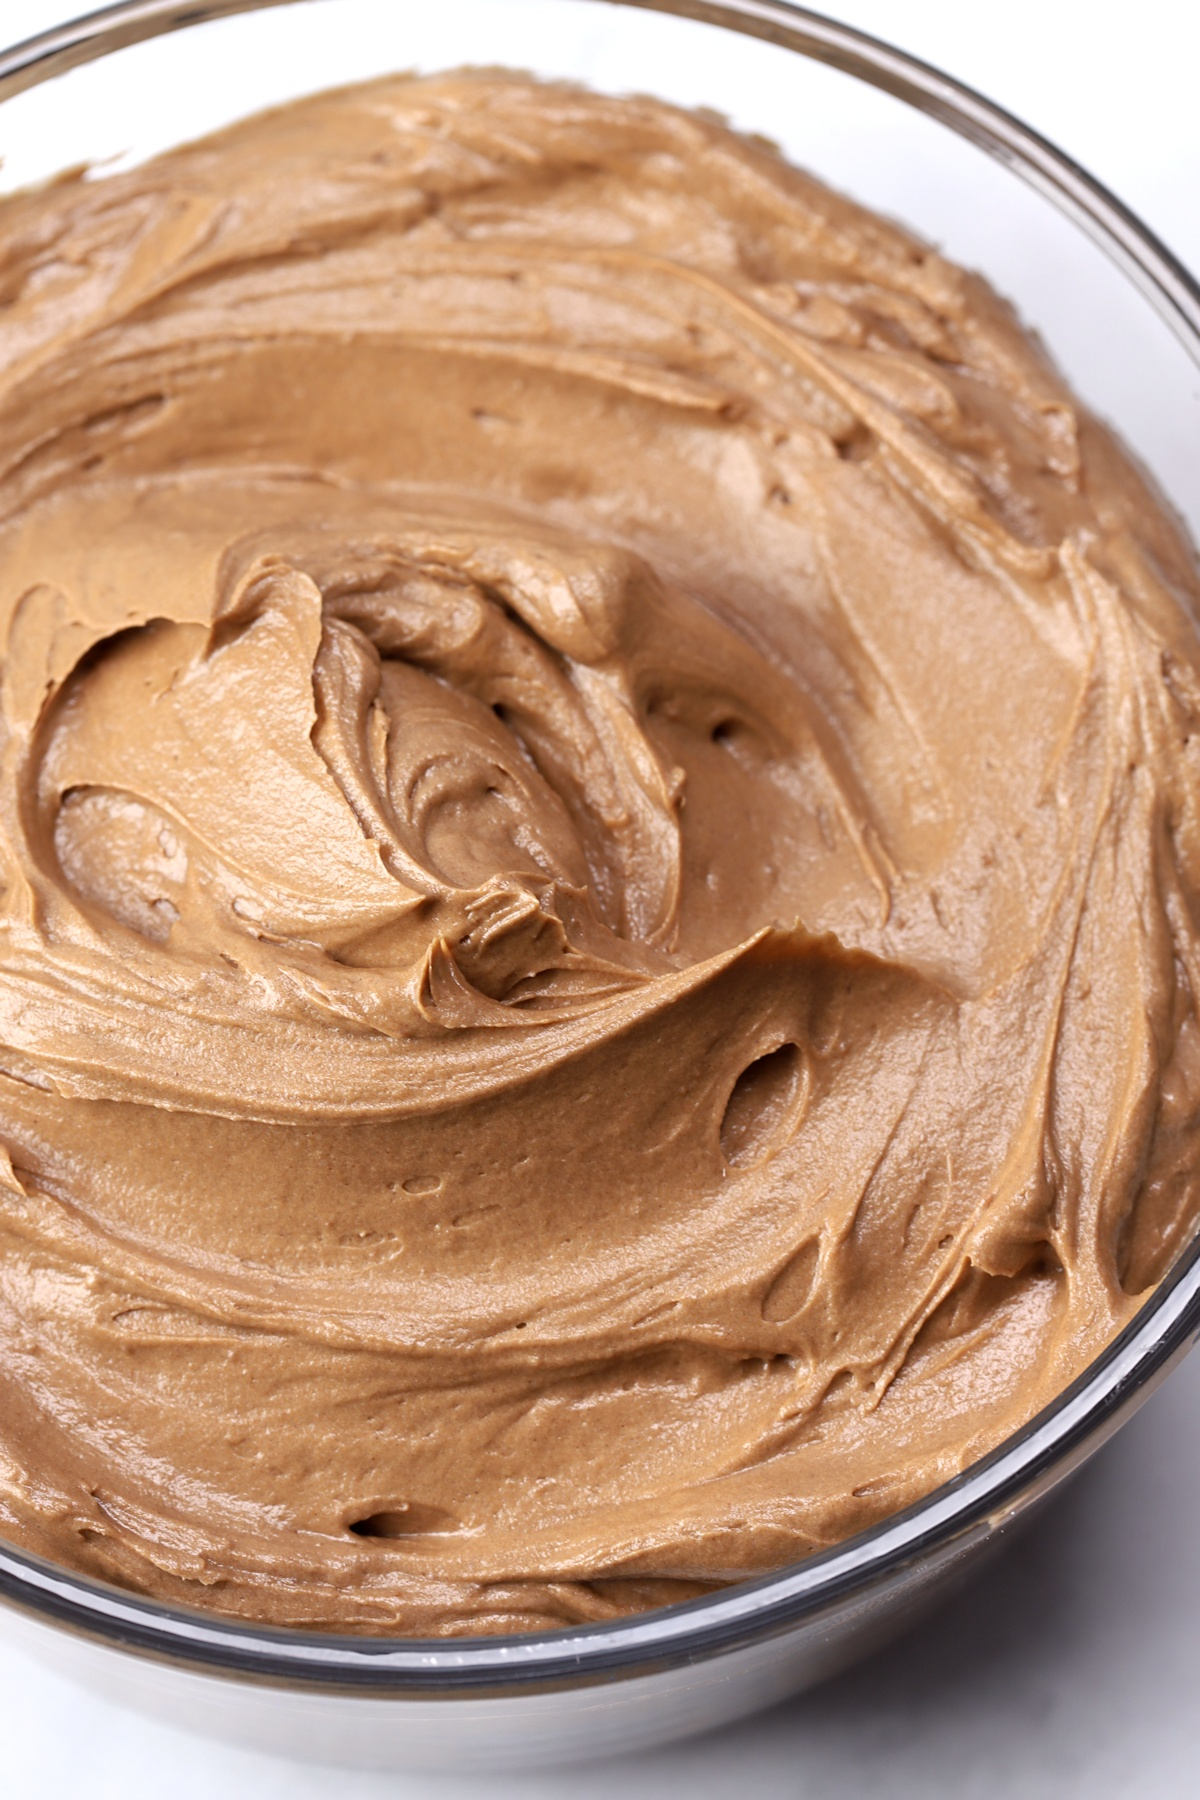 Chocolate buttercream frosting in a glass bowl.